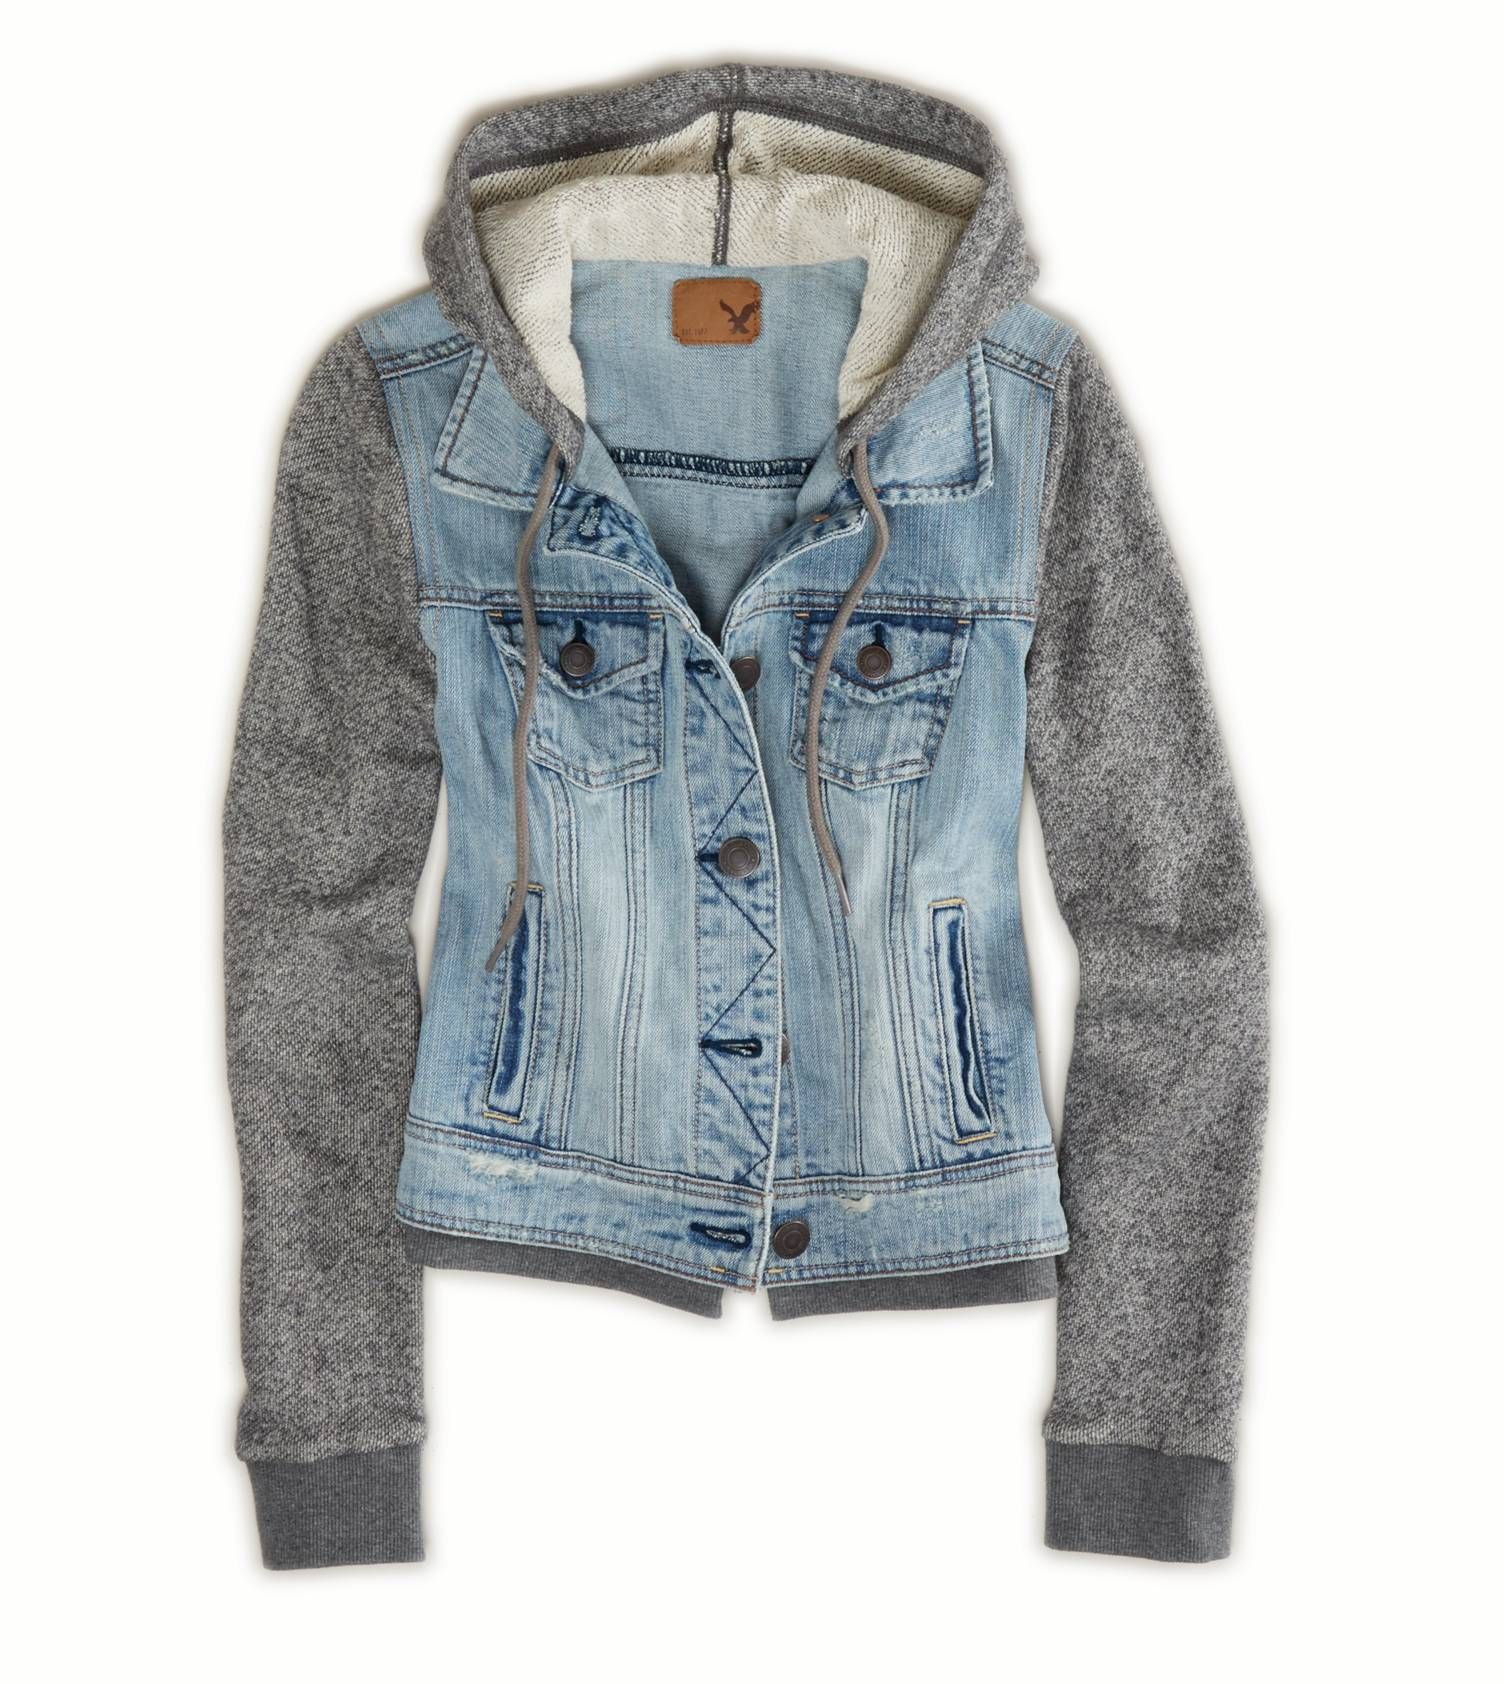 AE Denim Vested Hoodie i have literally wanted one of these since i was a  little girl!!!